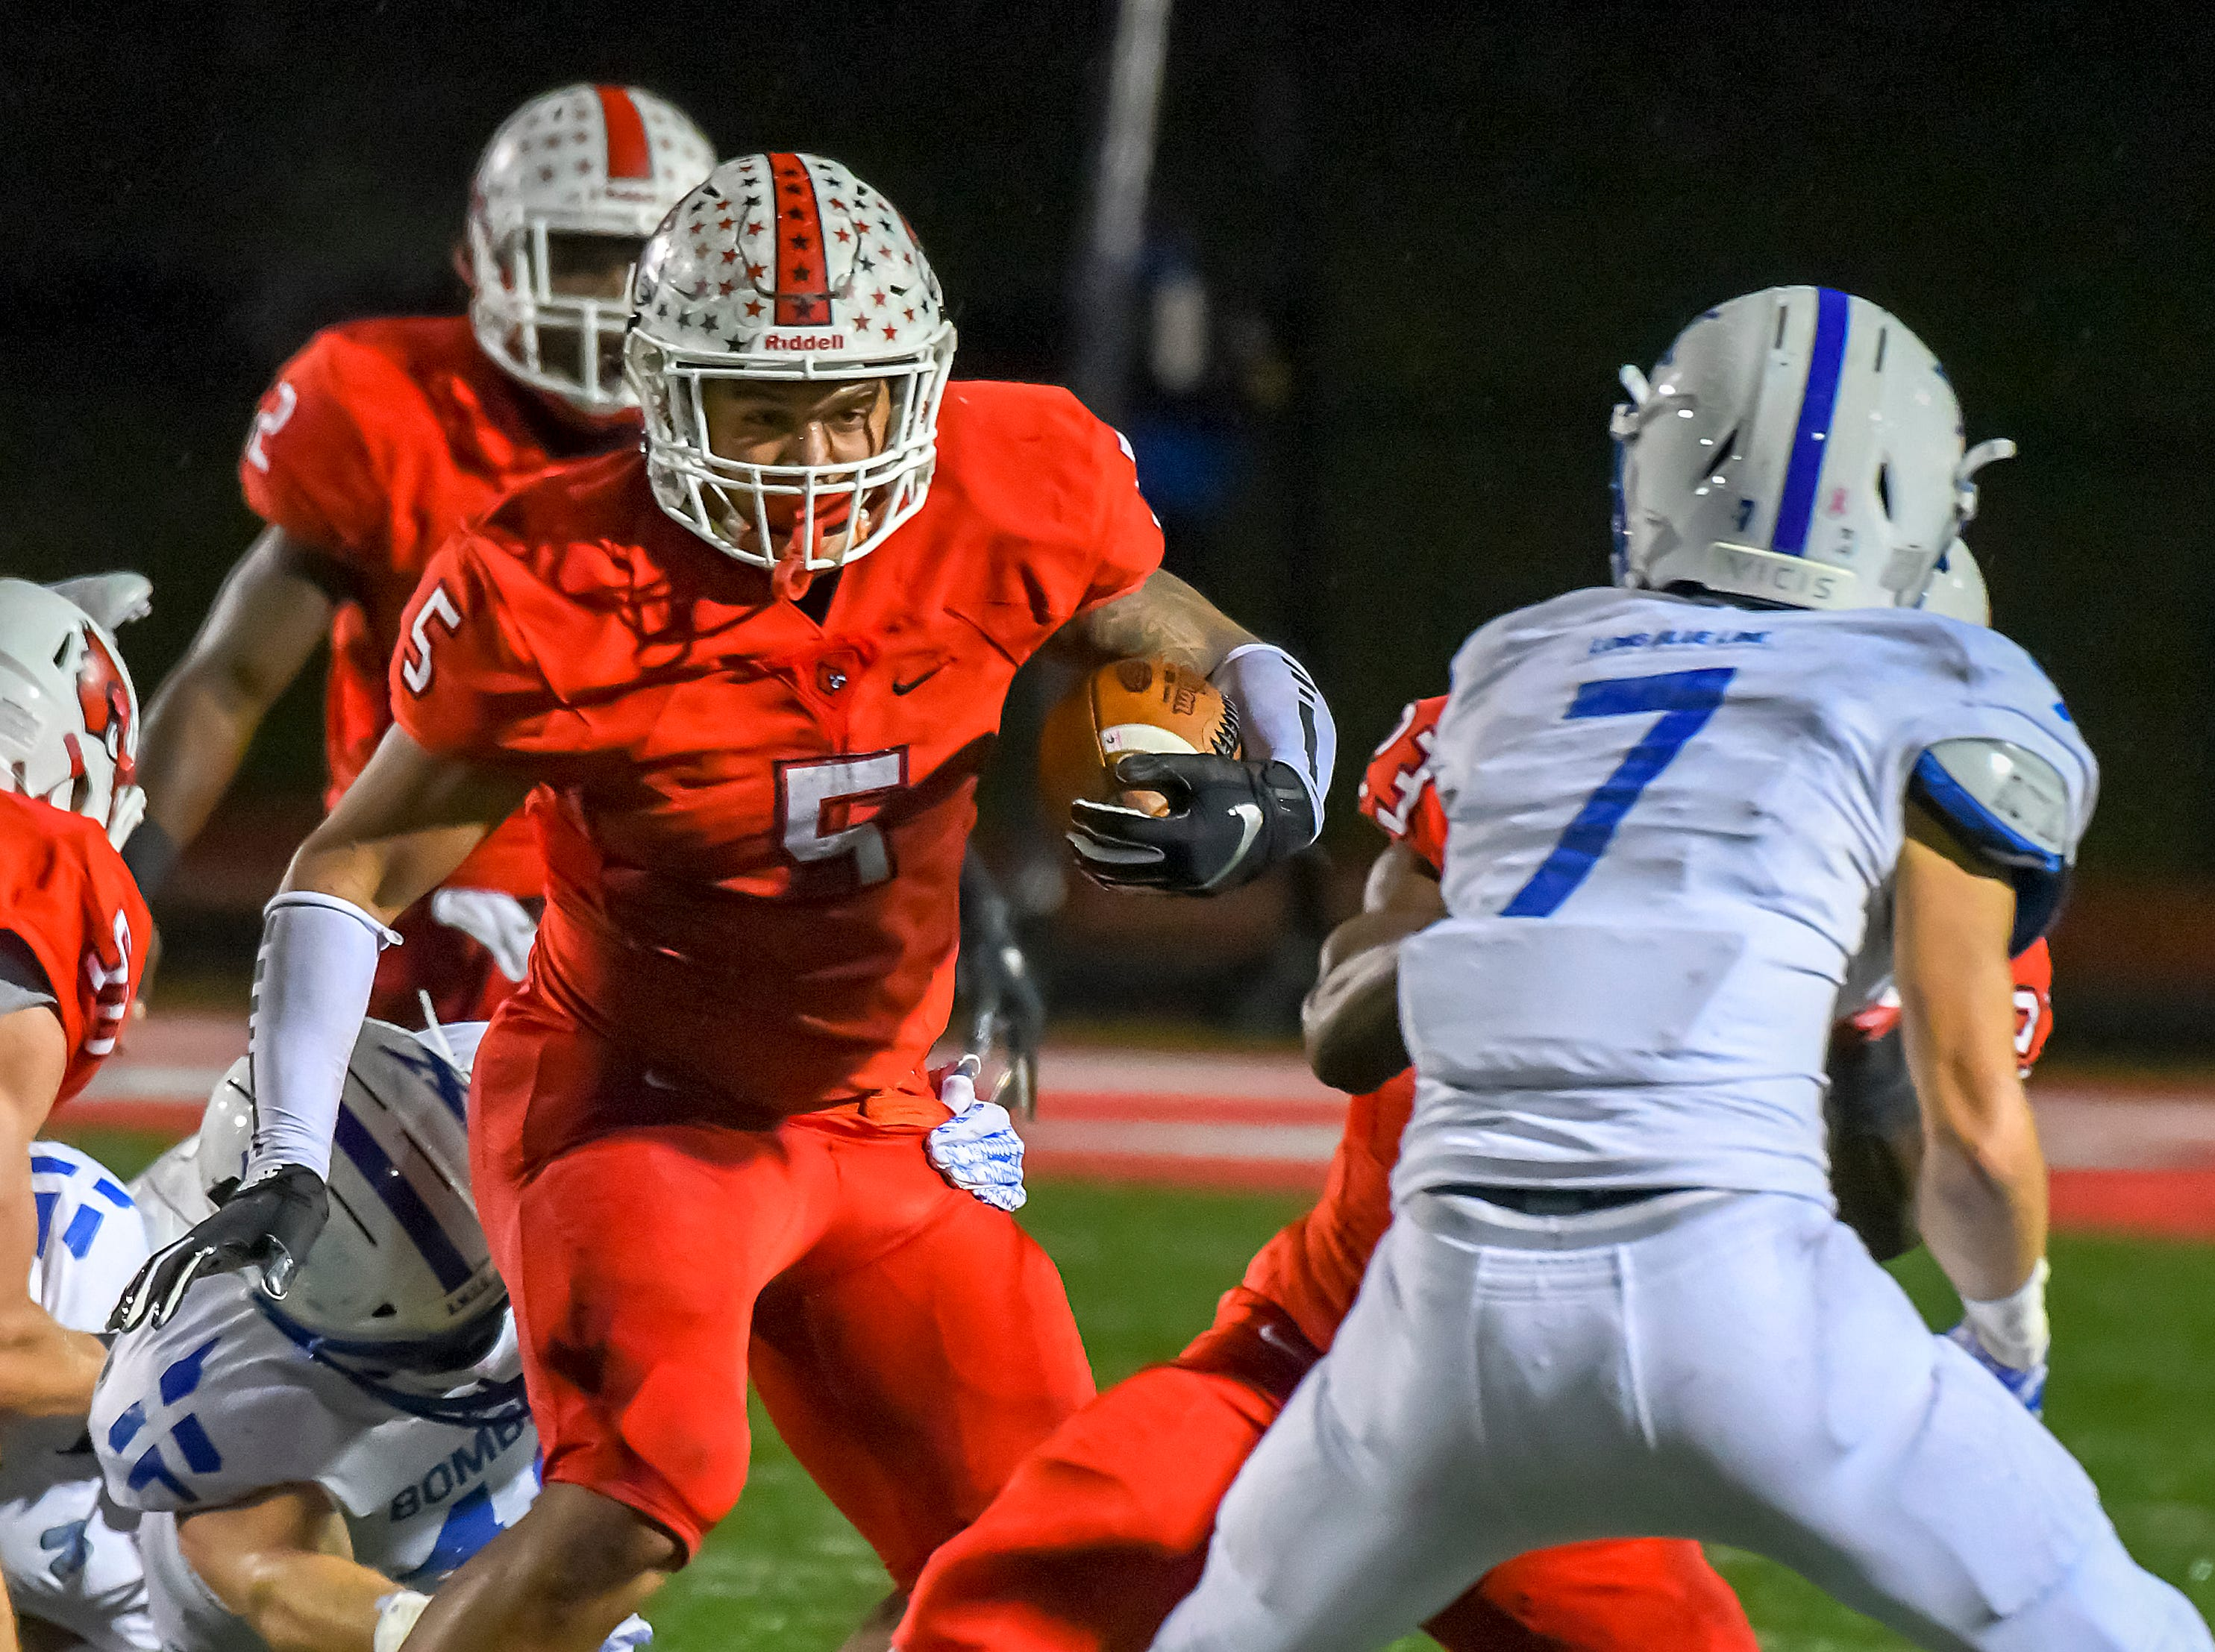 Ivan Pace Jr. (5) of Colerain runs the ball against St. X in the OHSAA DI Region 4 Playoffs at Colerain High School,  Friday Nov. 2, 2018